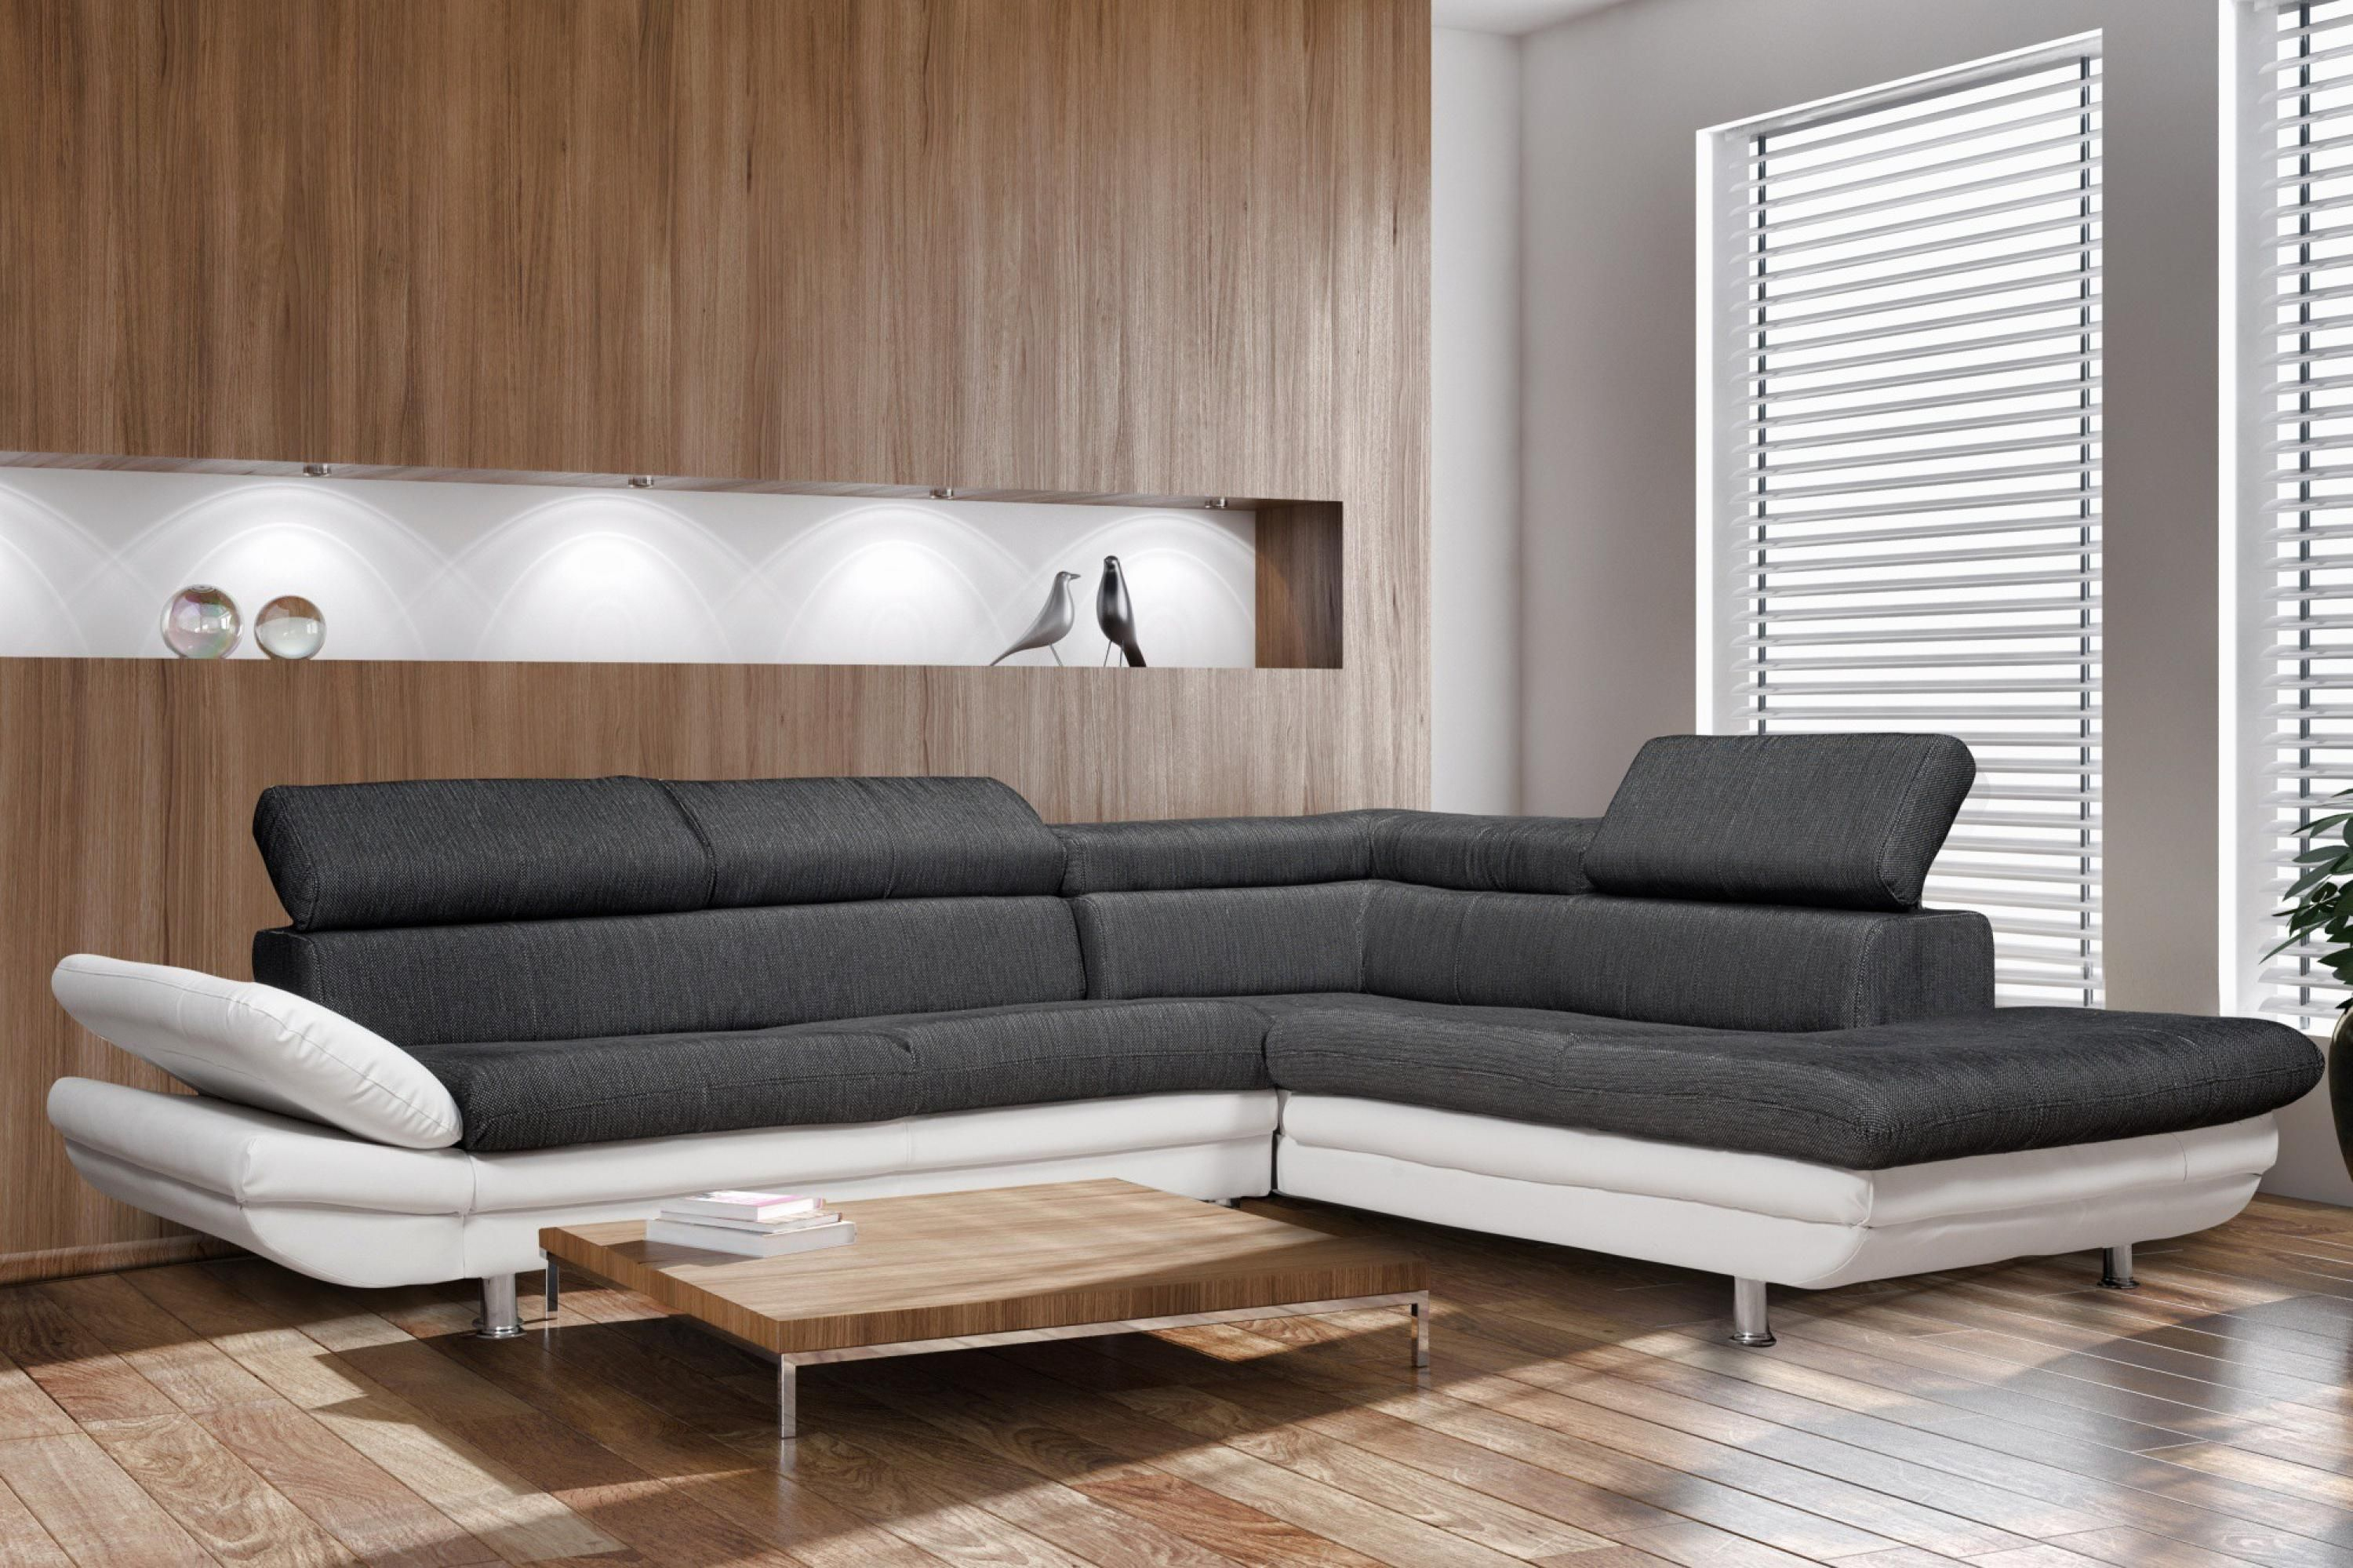 Canape Angle Cuir but Luxe Photographie Canap Convertible 3 Places Conforama 6 Cuir 1 Avec S Et Full